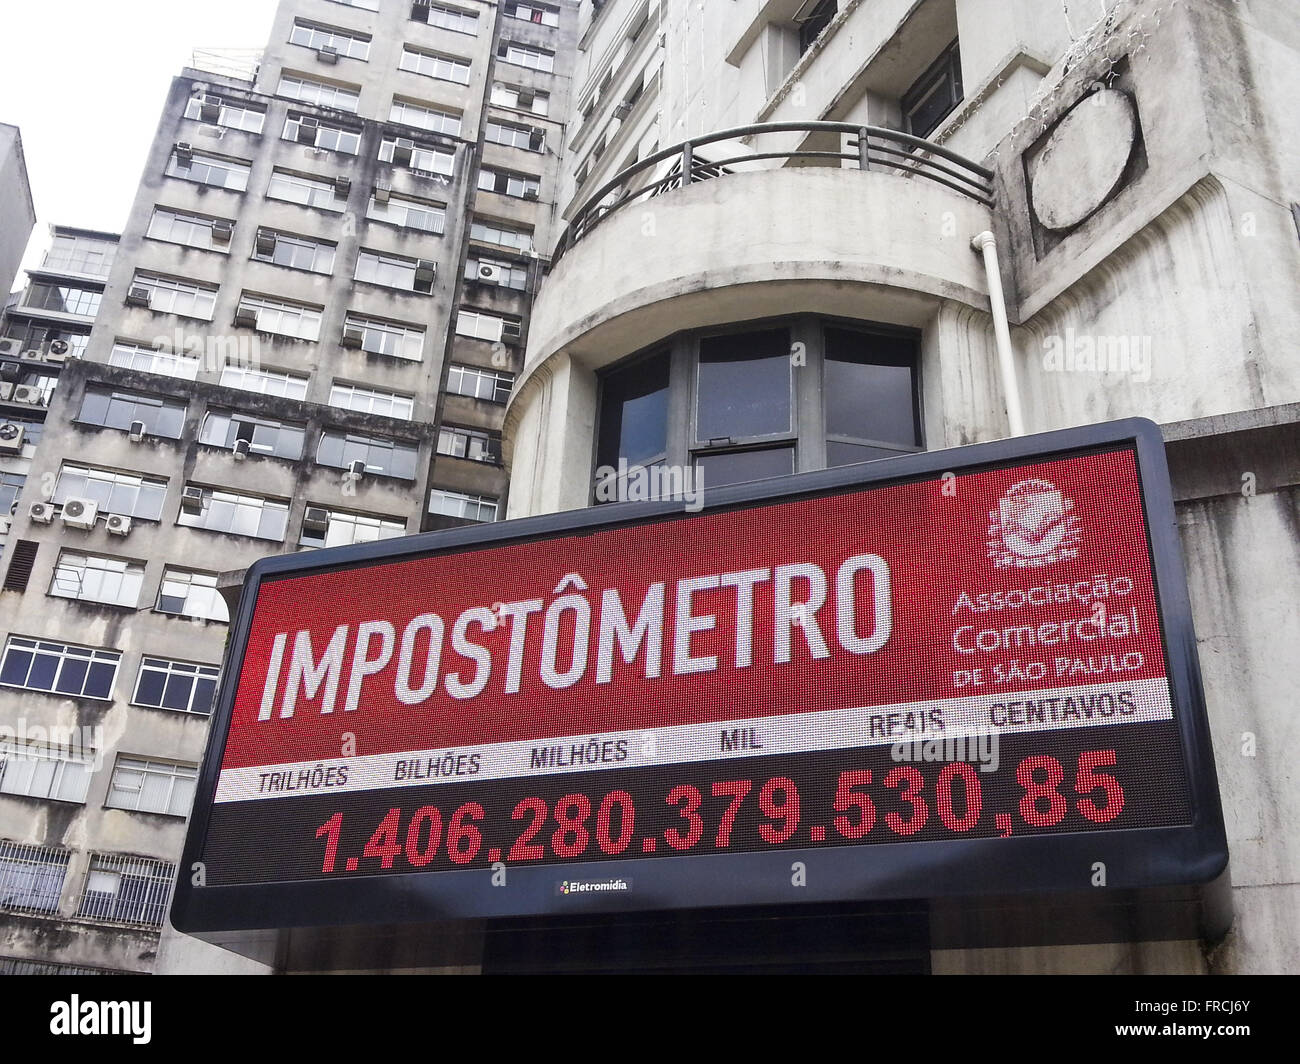 Impostômetro - panel showing the amount of taxes paid by the Brazilians in real time - Stock Image